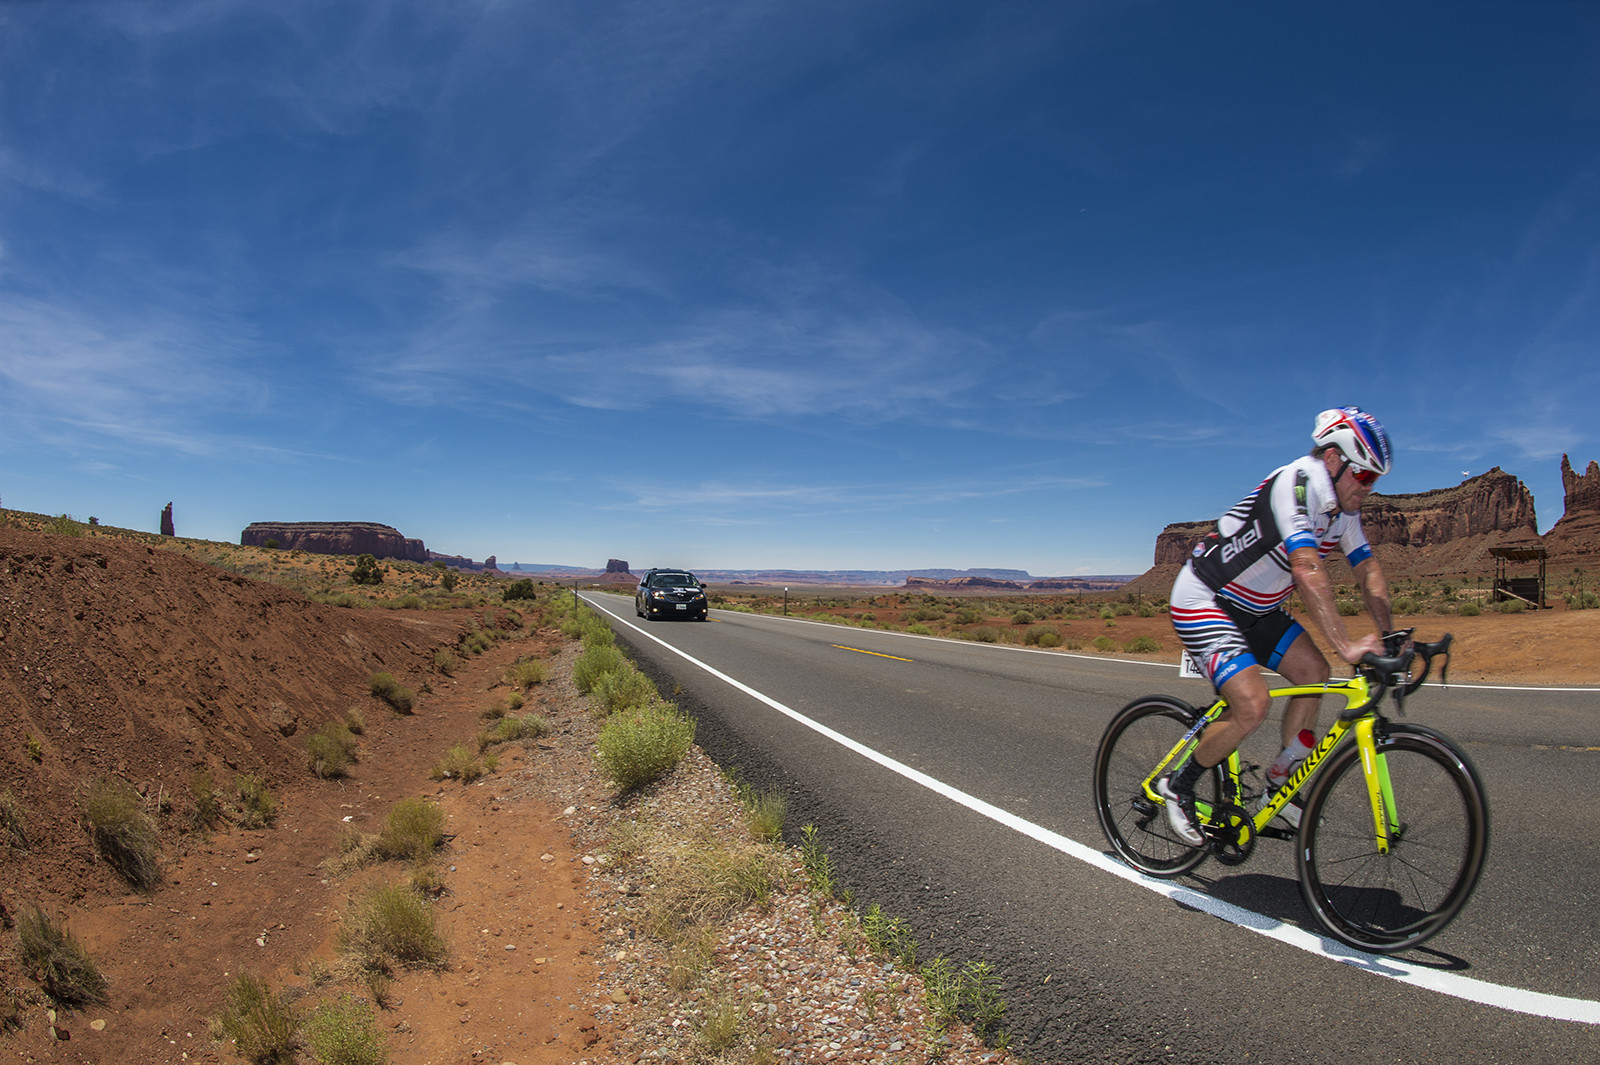 Jeff Ward spinning through the heat in Monument Valley.